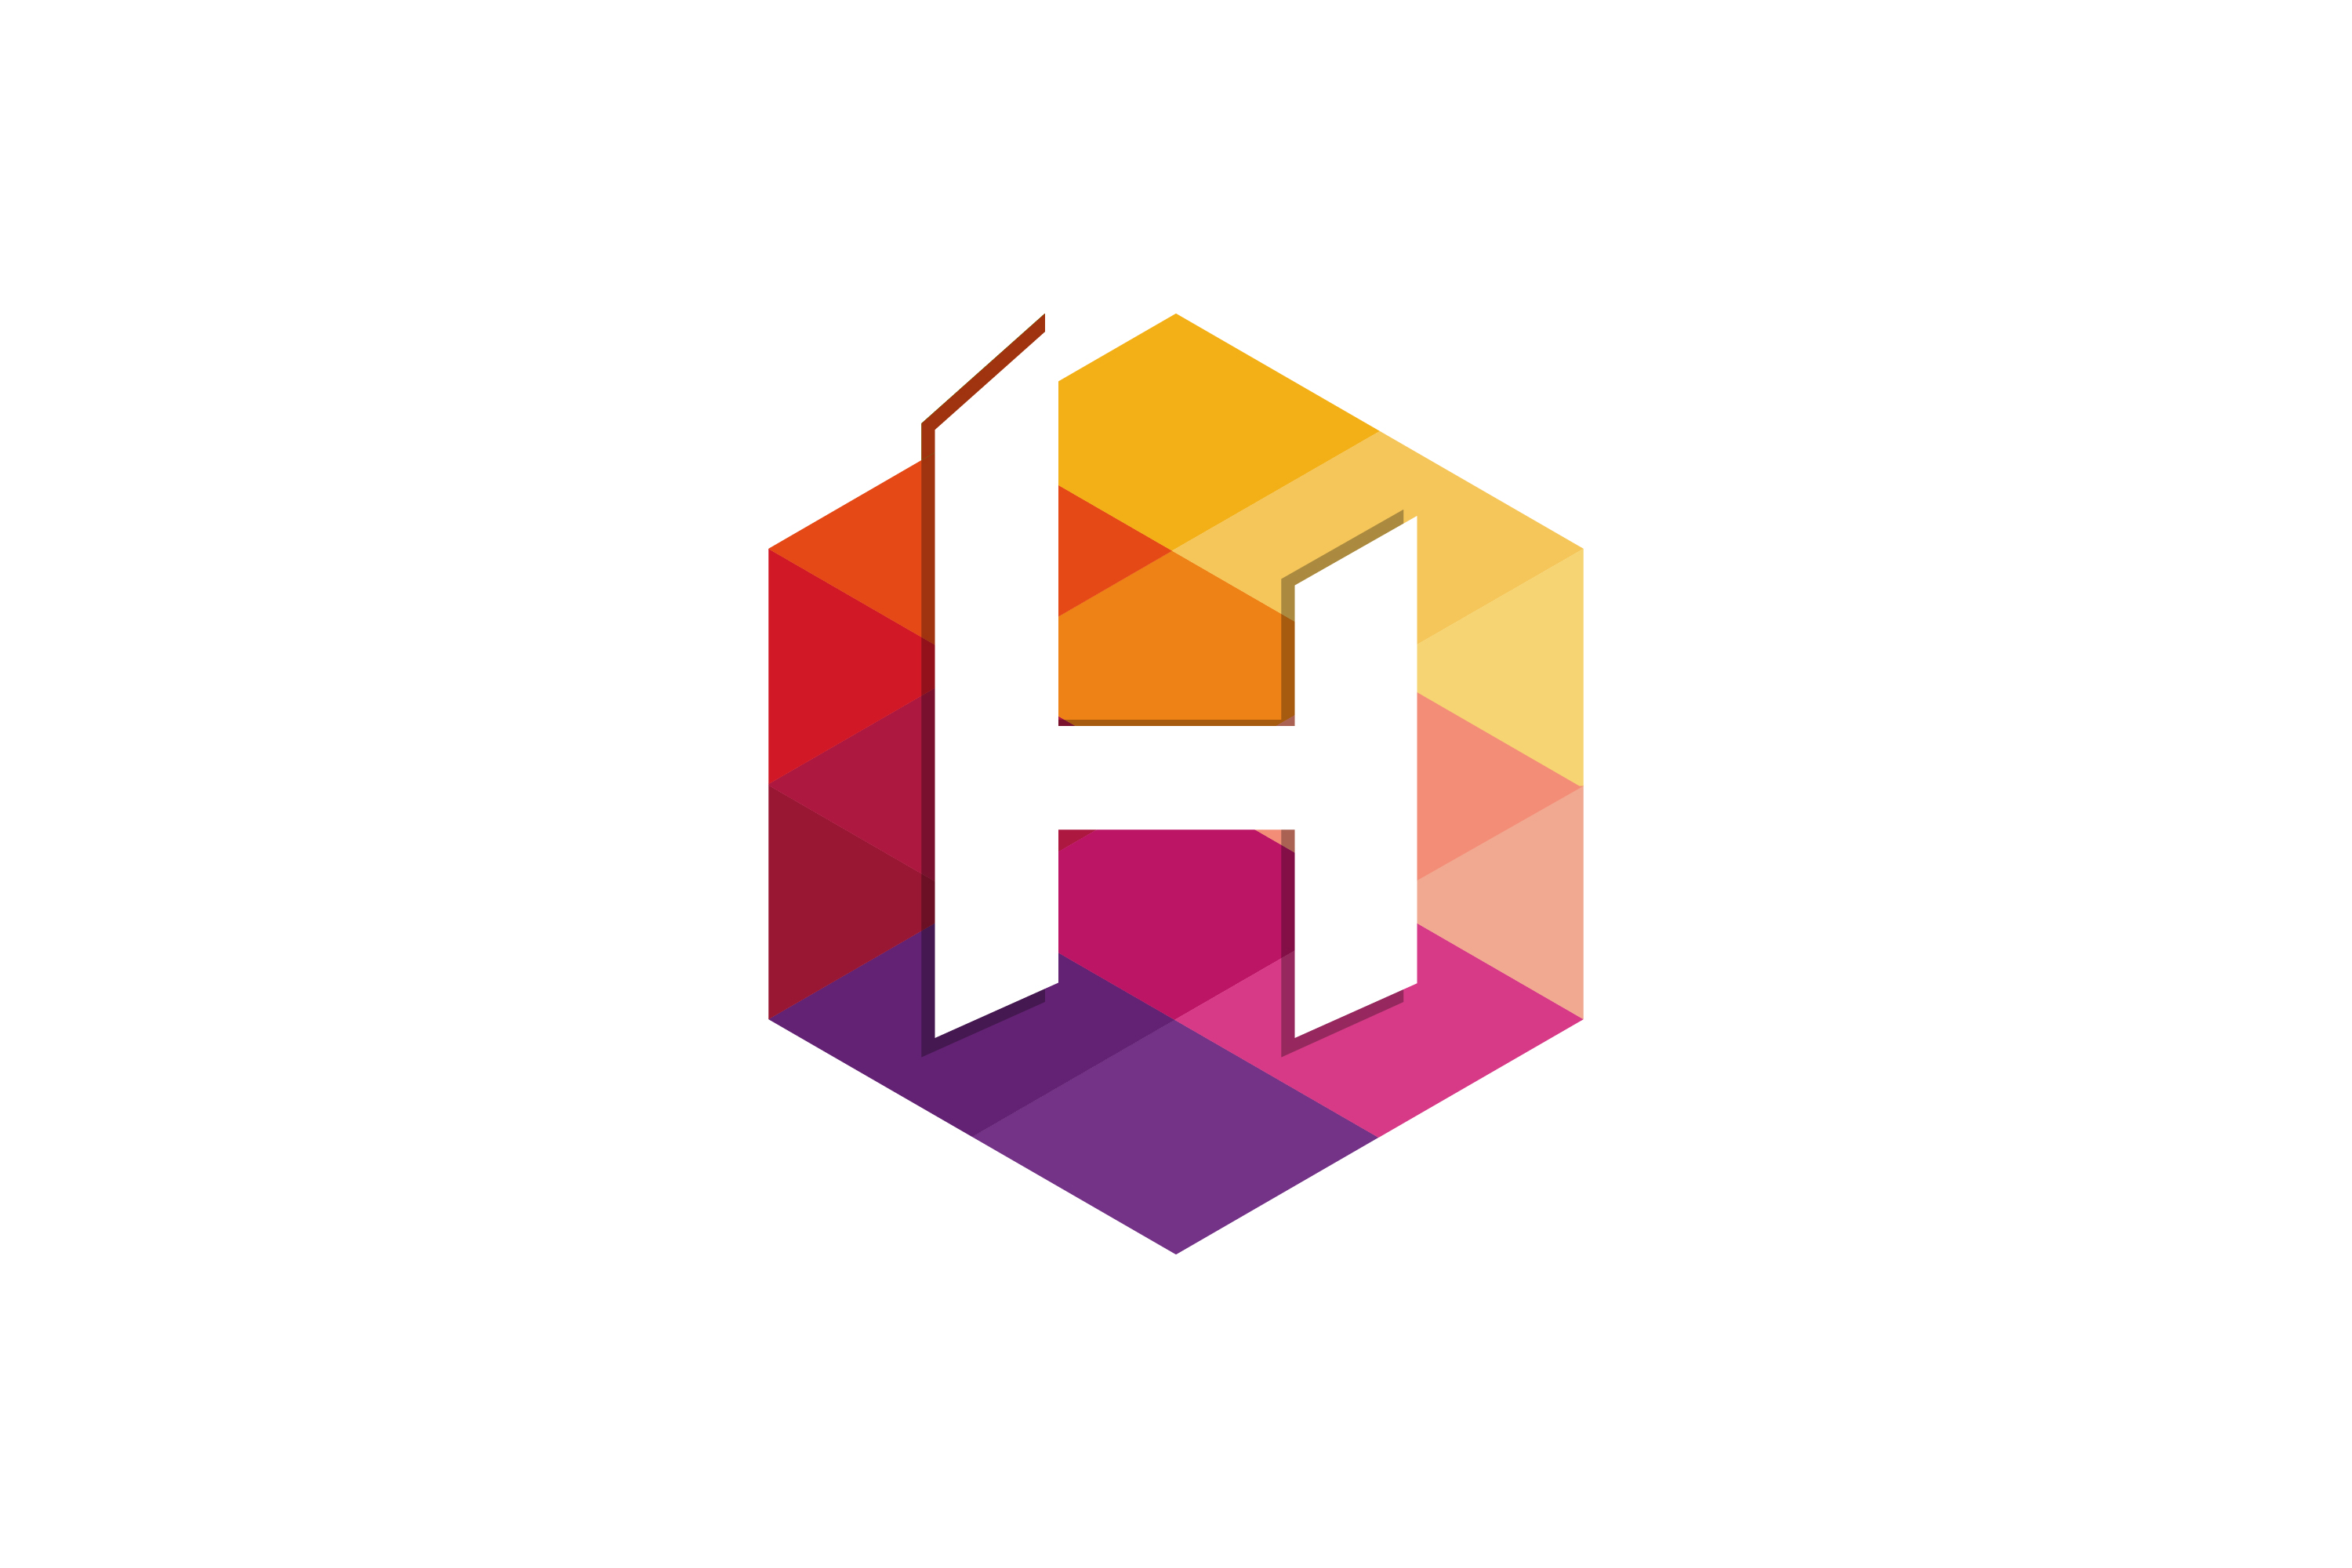 H Letter Colorful Hexagon Logo Graphic By Noory Shopper Creative Fabrica